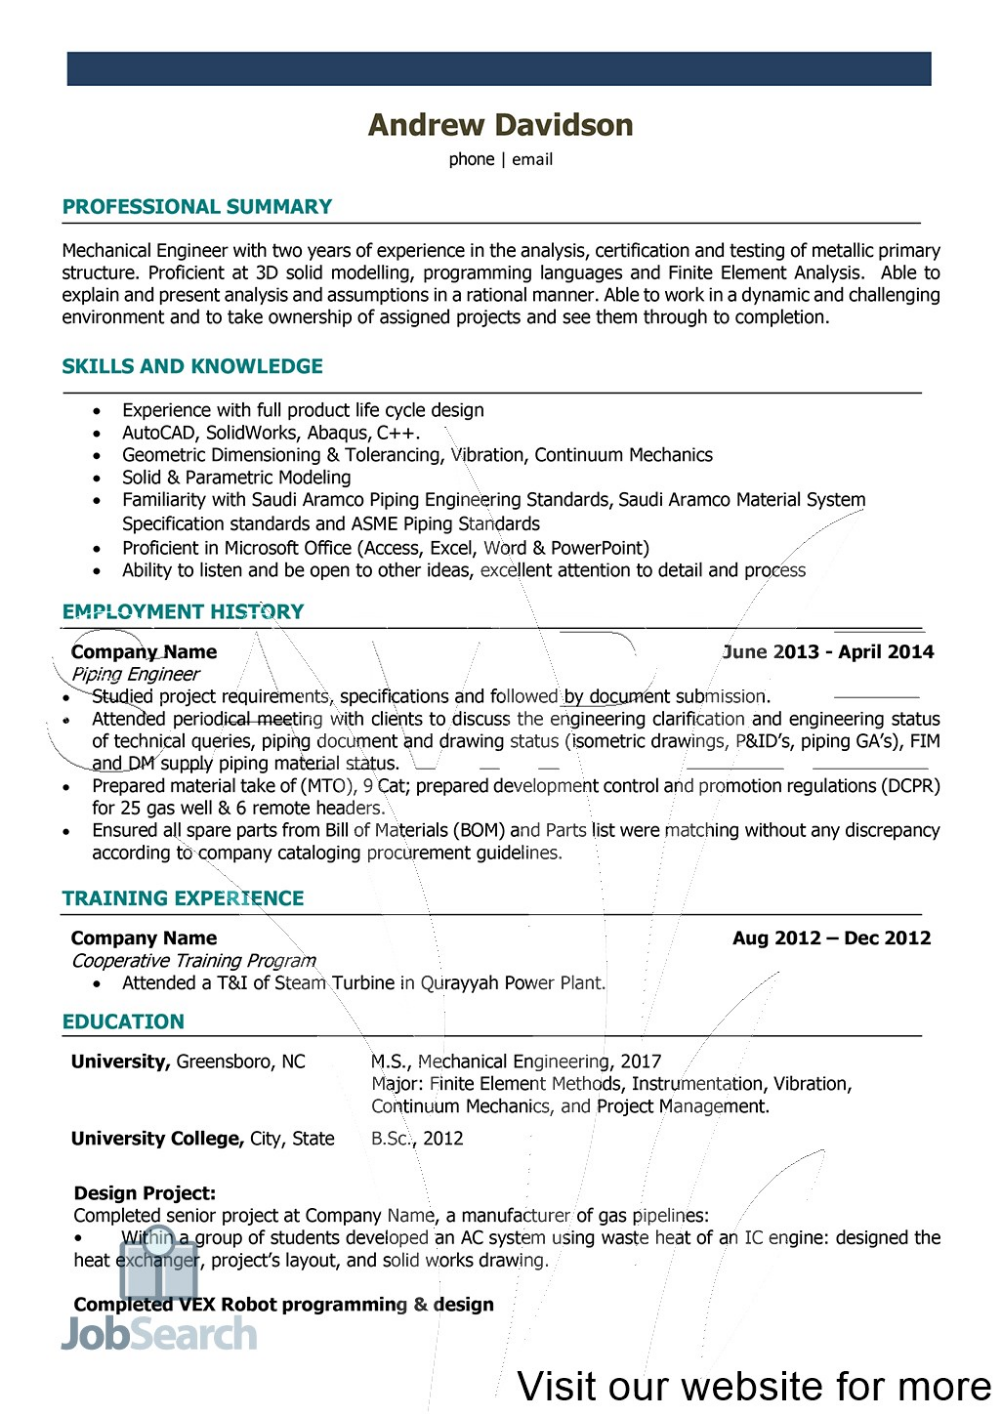 Resume For Engineering Internship Students 2020 Resume For Engineering Resume For Engineerin In 2020 Engineering Internships Student Resume Student Resume Template